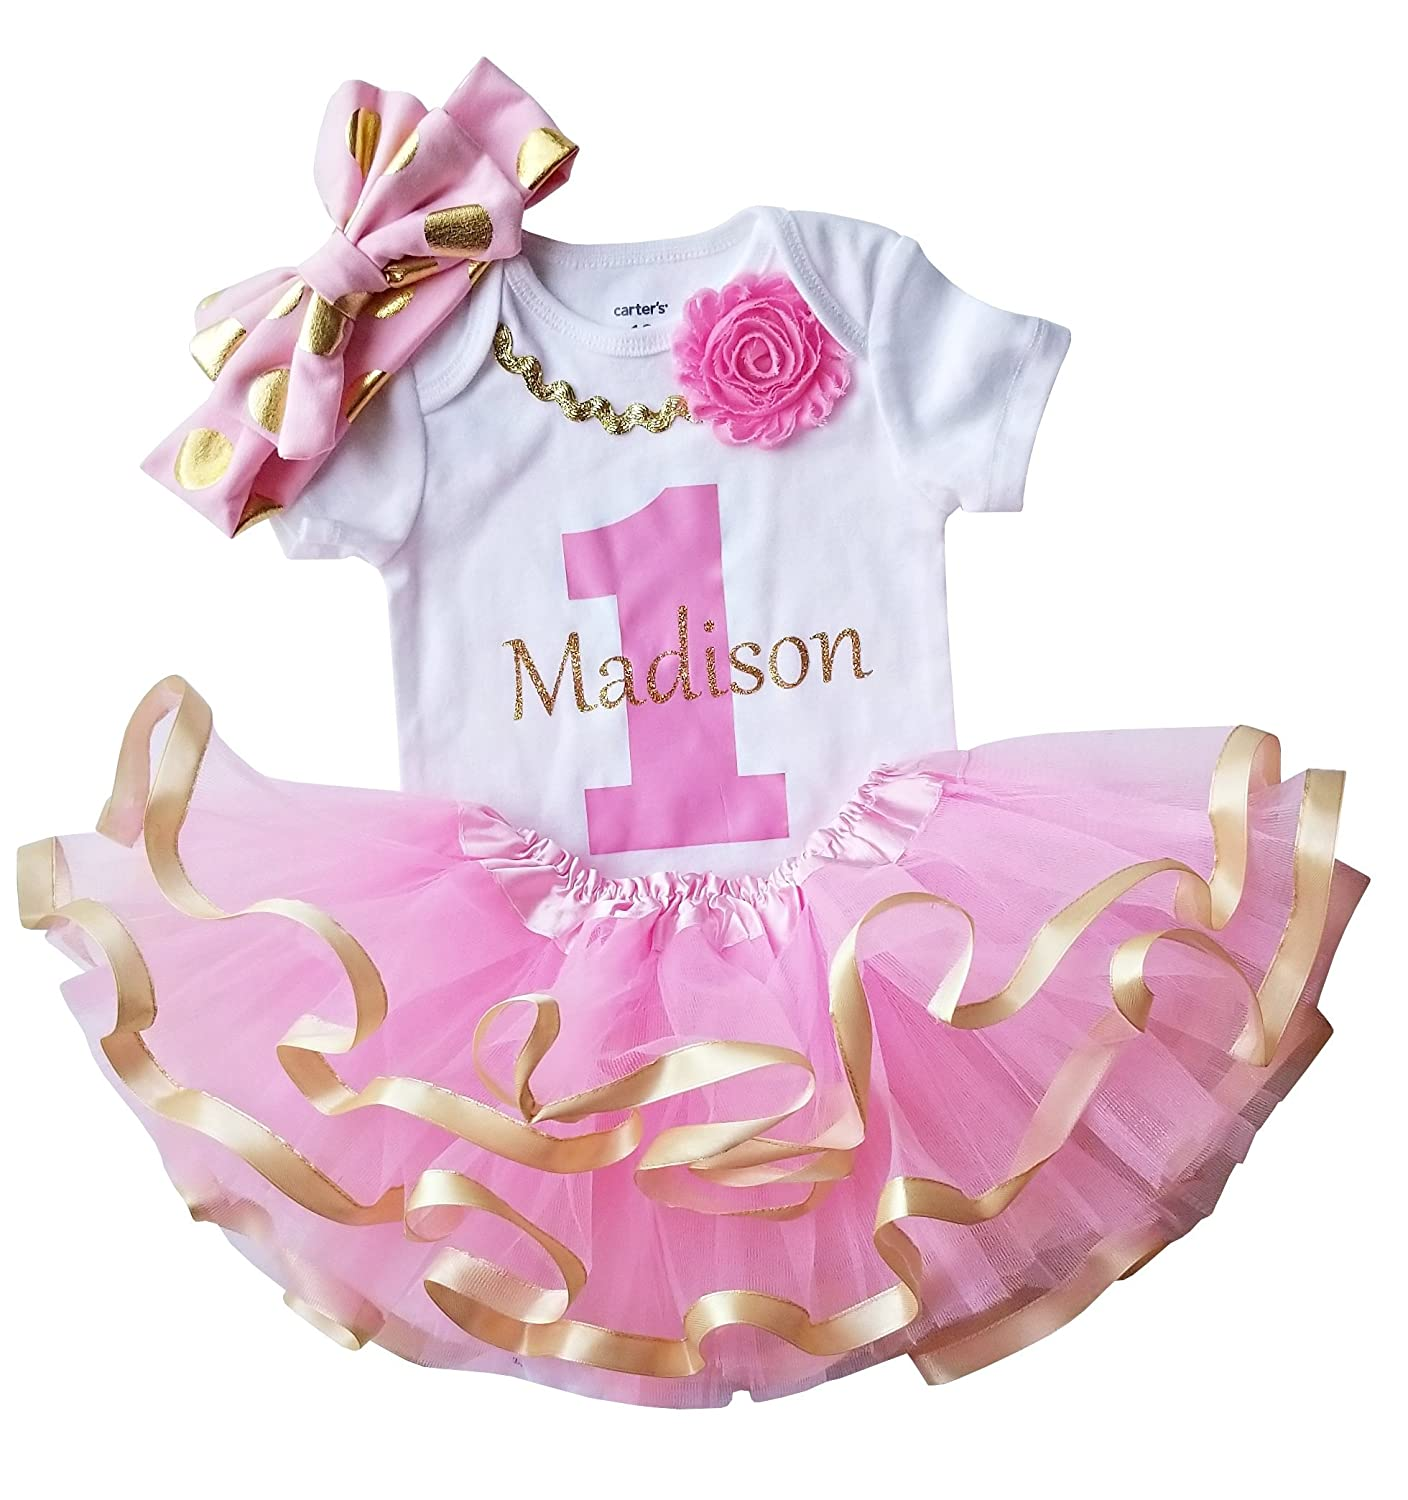 1st Birthday Girl - Pink Gold Personalized Outfit bdaygirlpinkPZ